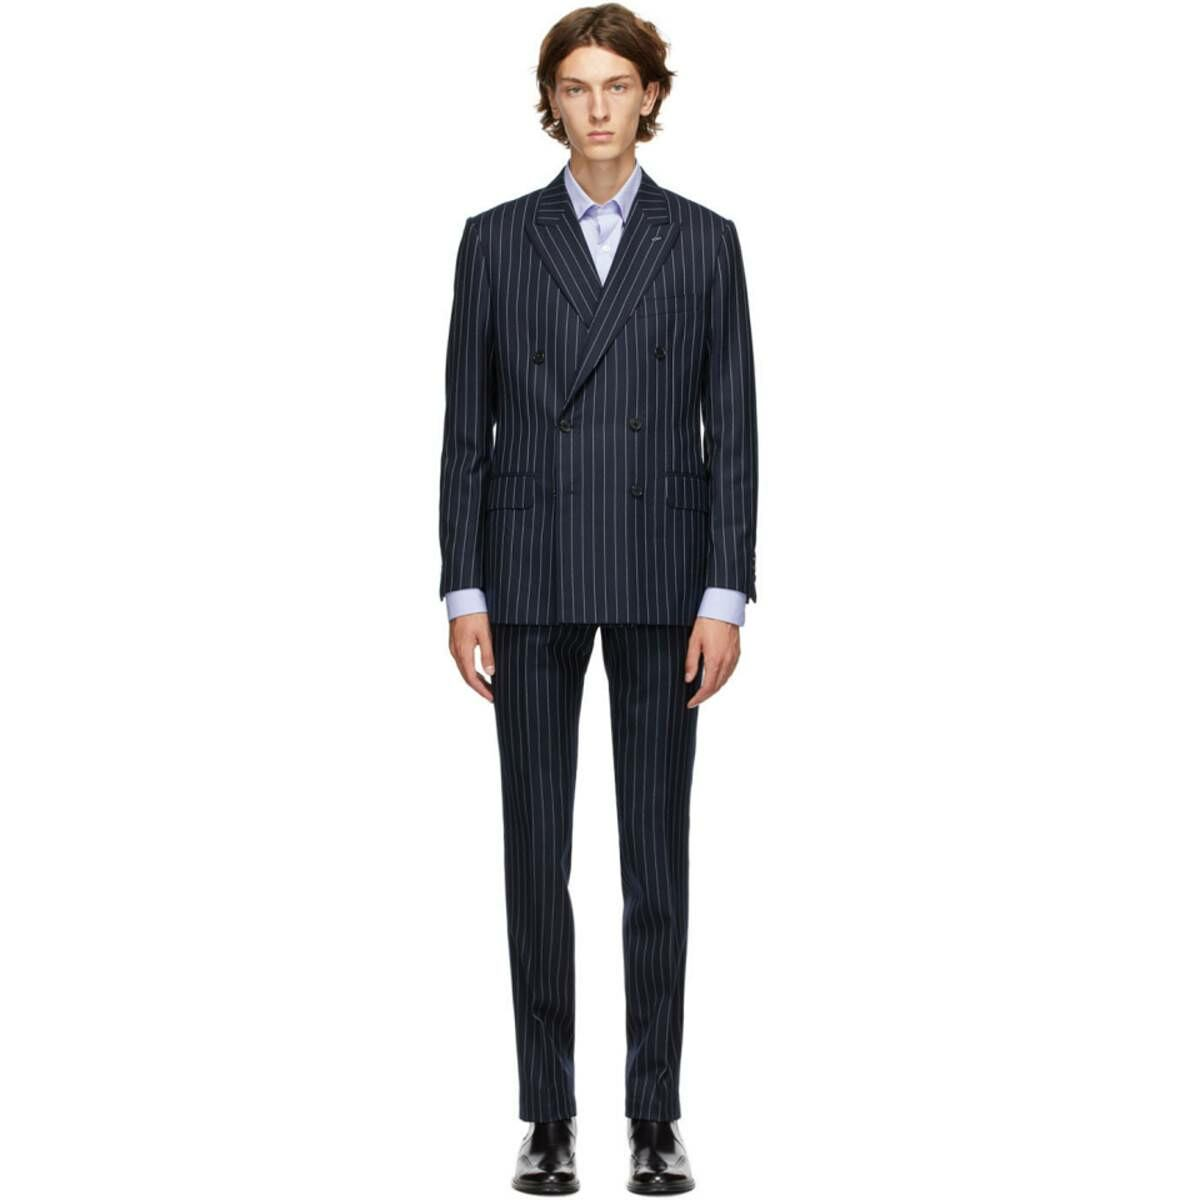 Husbands Navy Pinstripe Suit Ssense USA MEN Men FASHION Mens SUITS